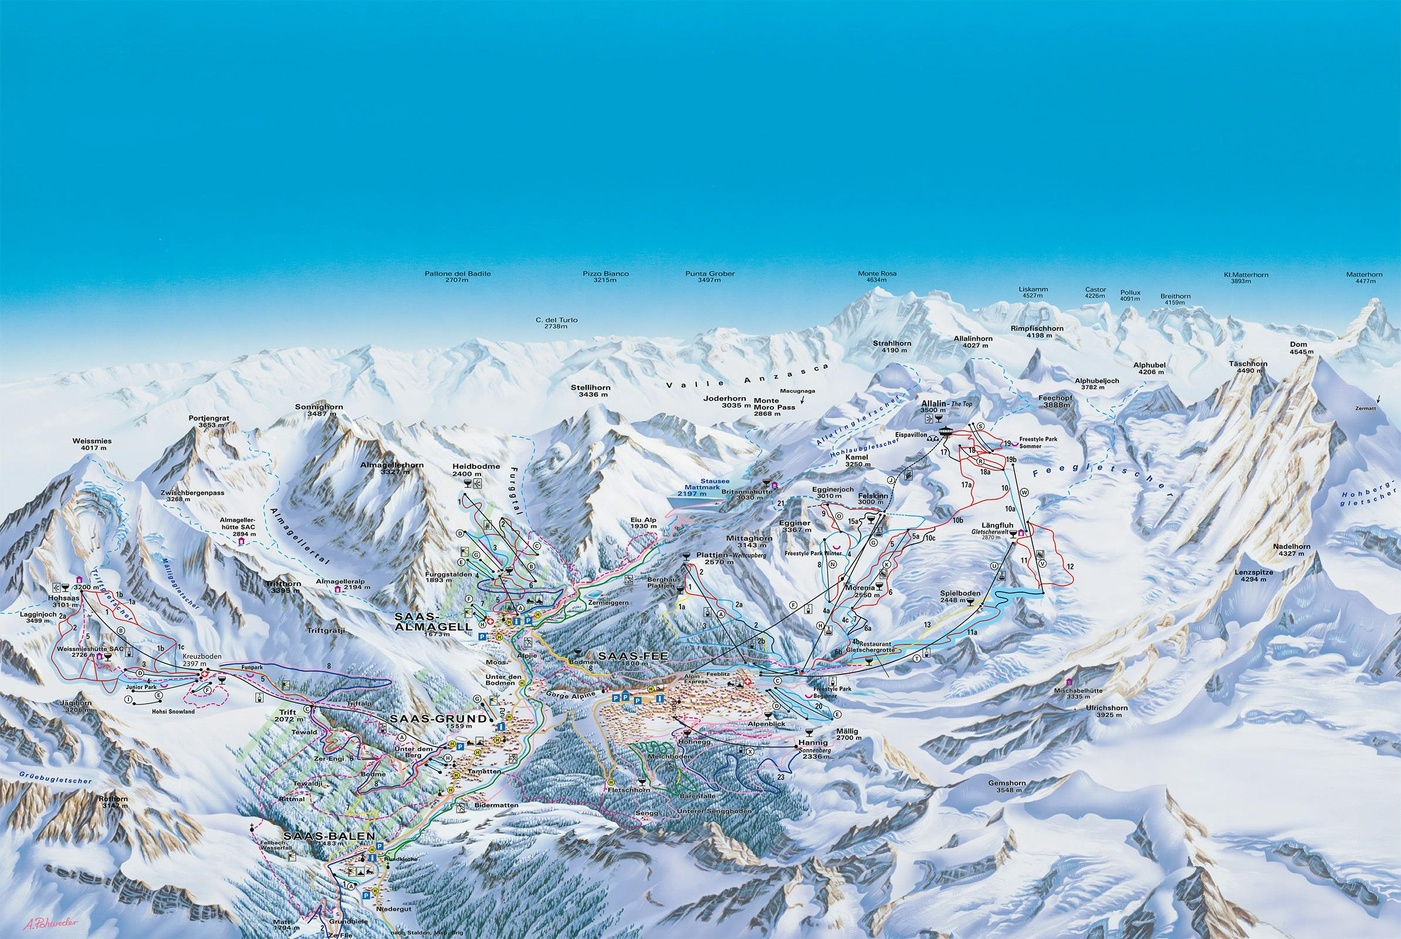 Saas Fee Piste / Trail Map